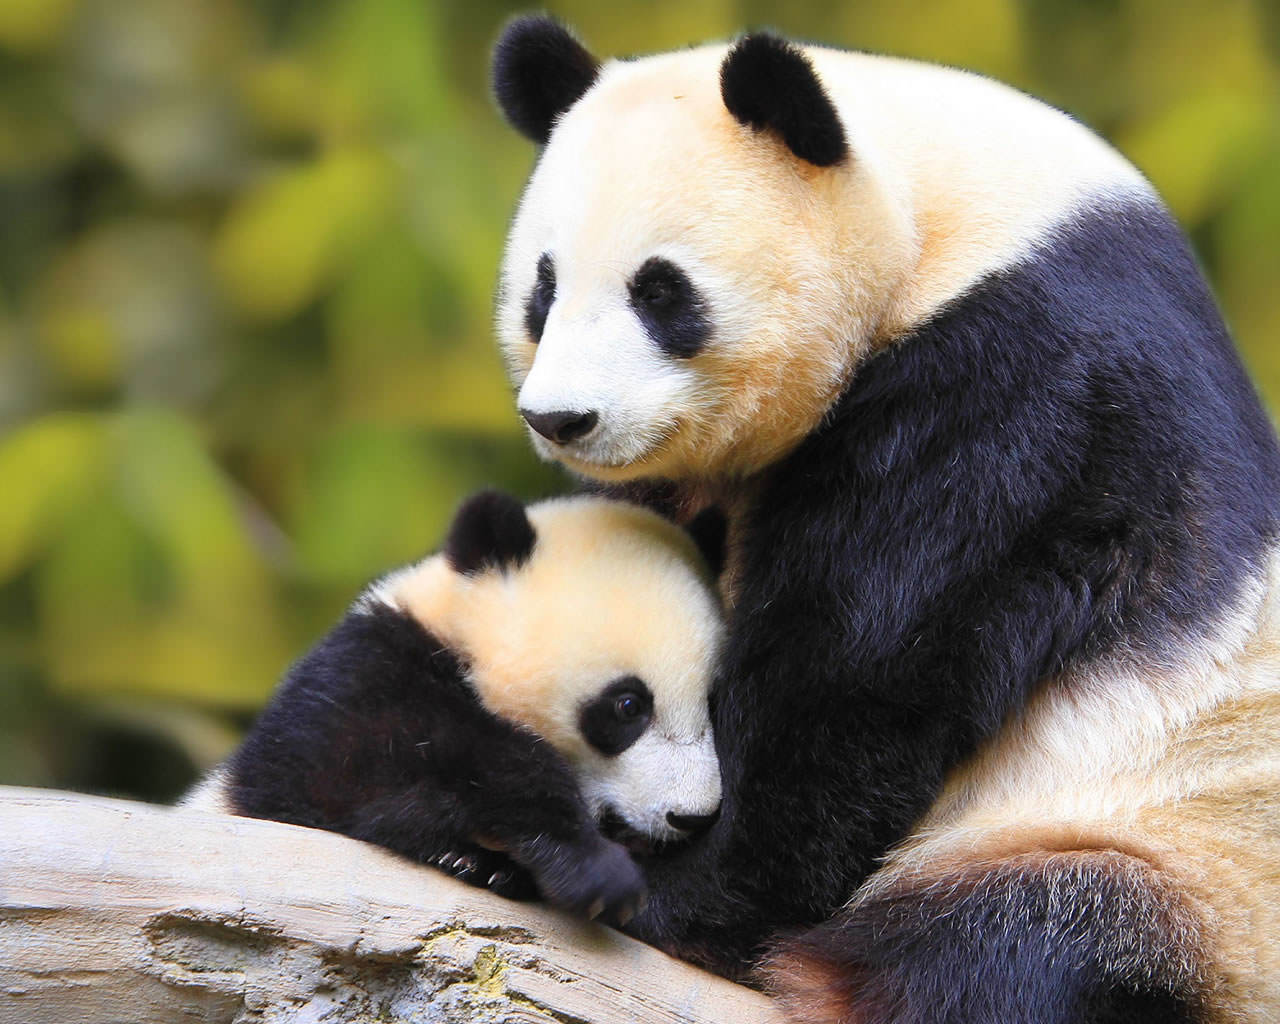 Baby Panda With Mother 1280x1024 1280x1024